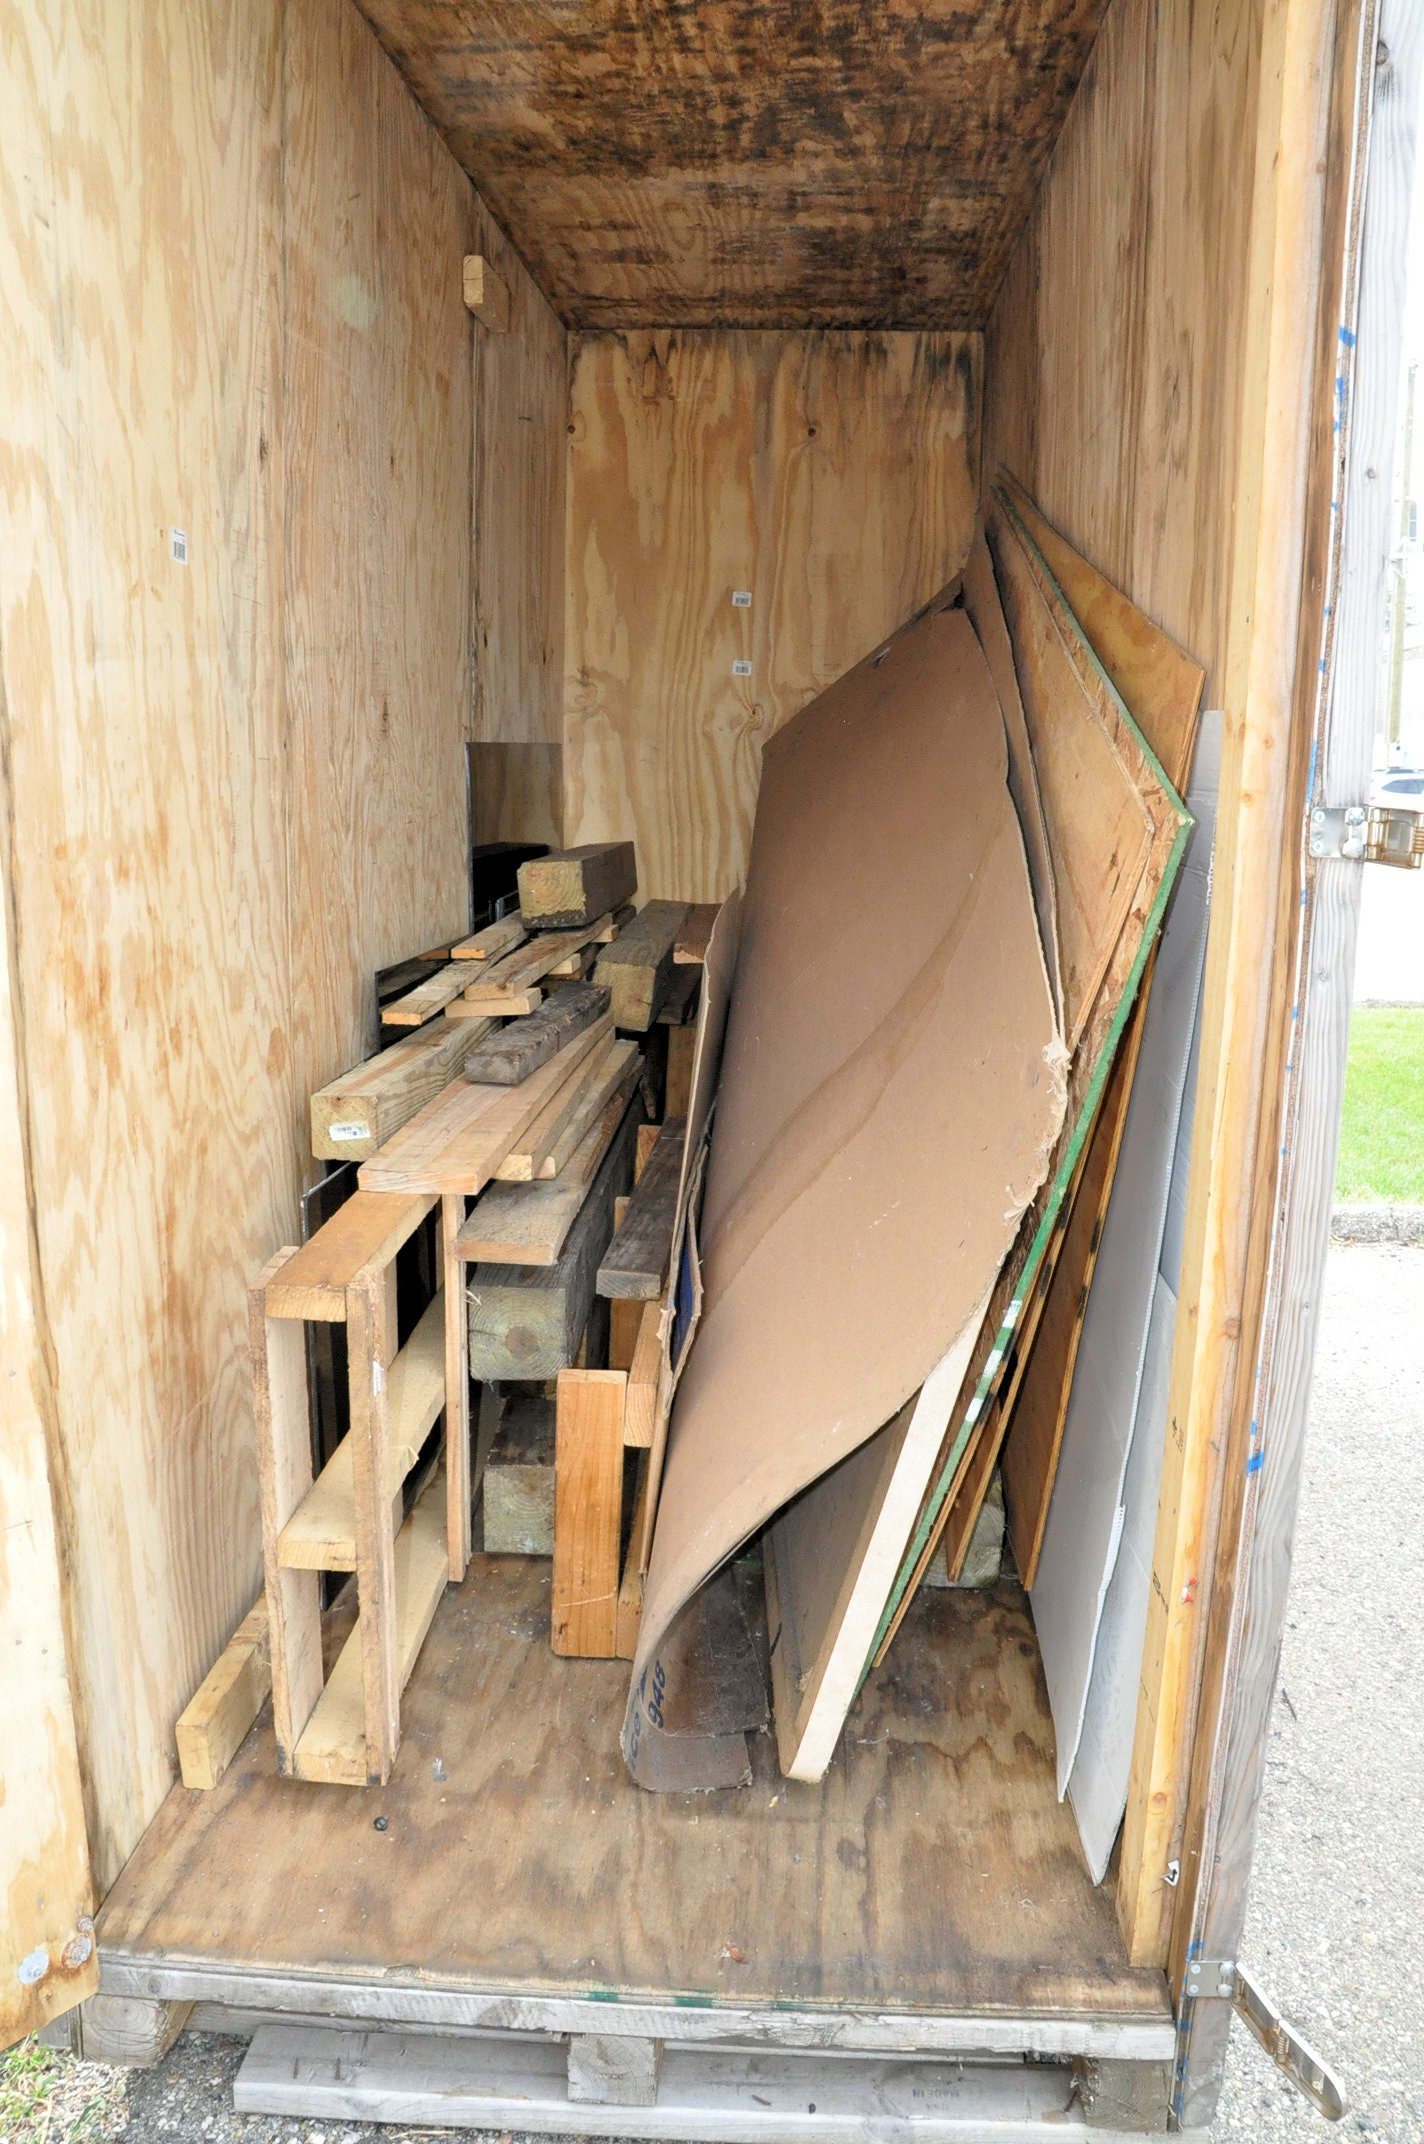 Lot 356 - Lot-Wood Shipping Container with Lumber Contents, (Outside)